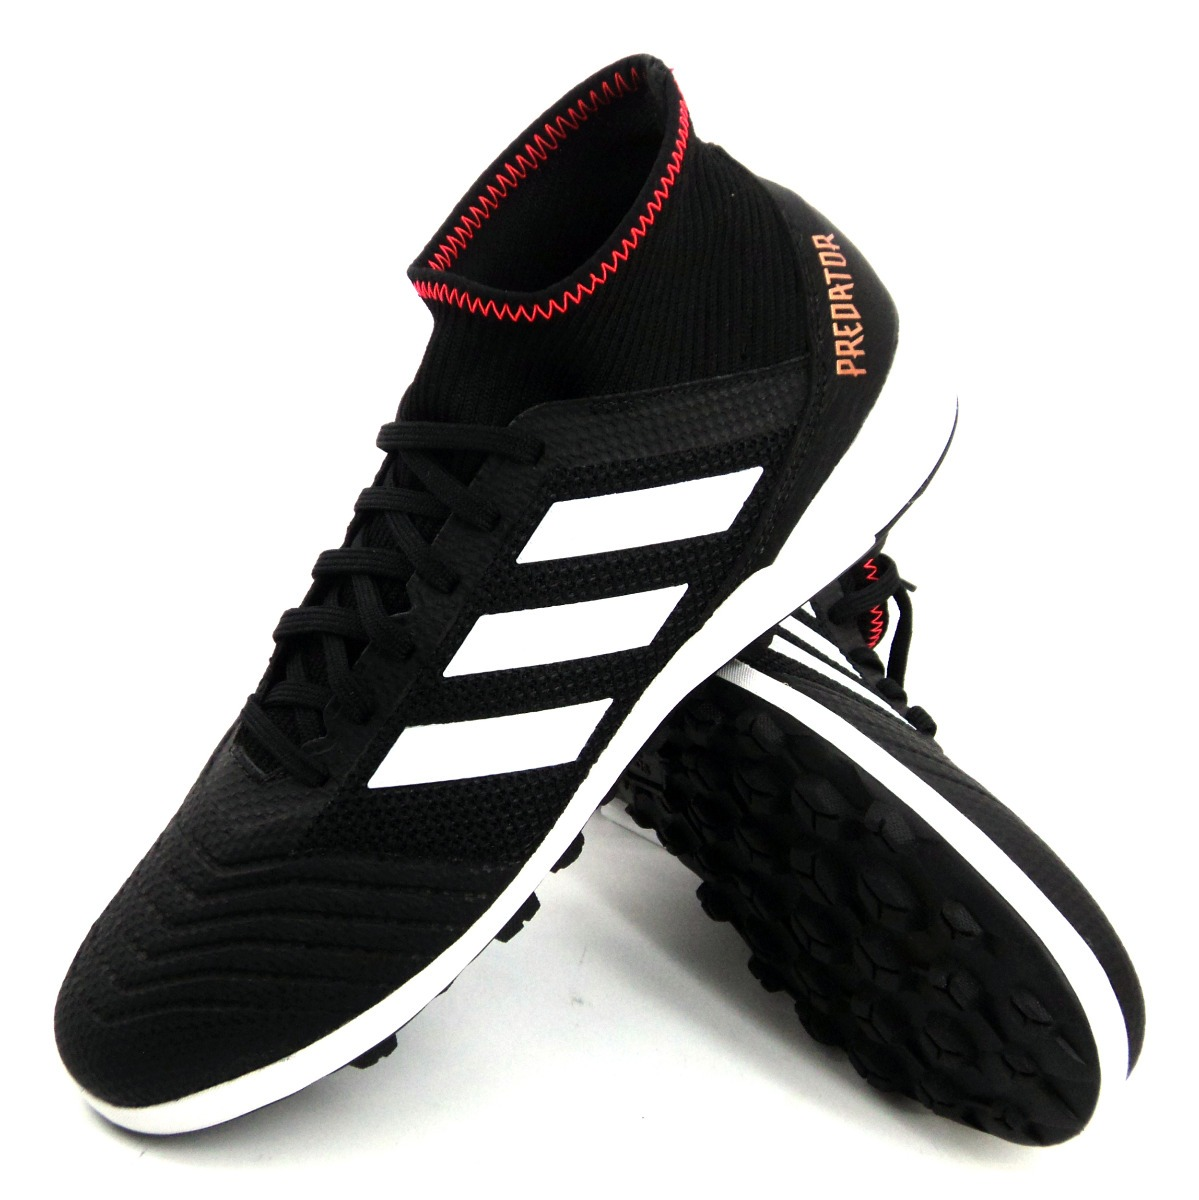 on sale 5c9d9 c1fbf adidas ace tango 18.3